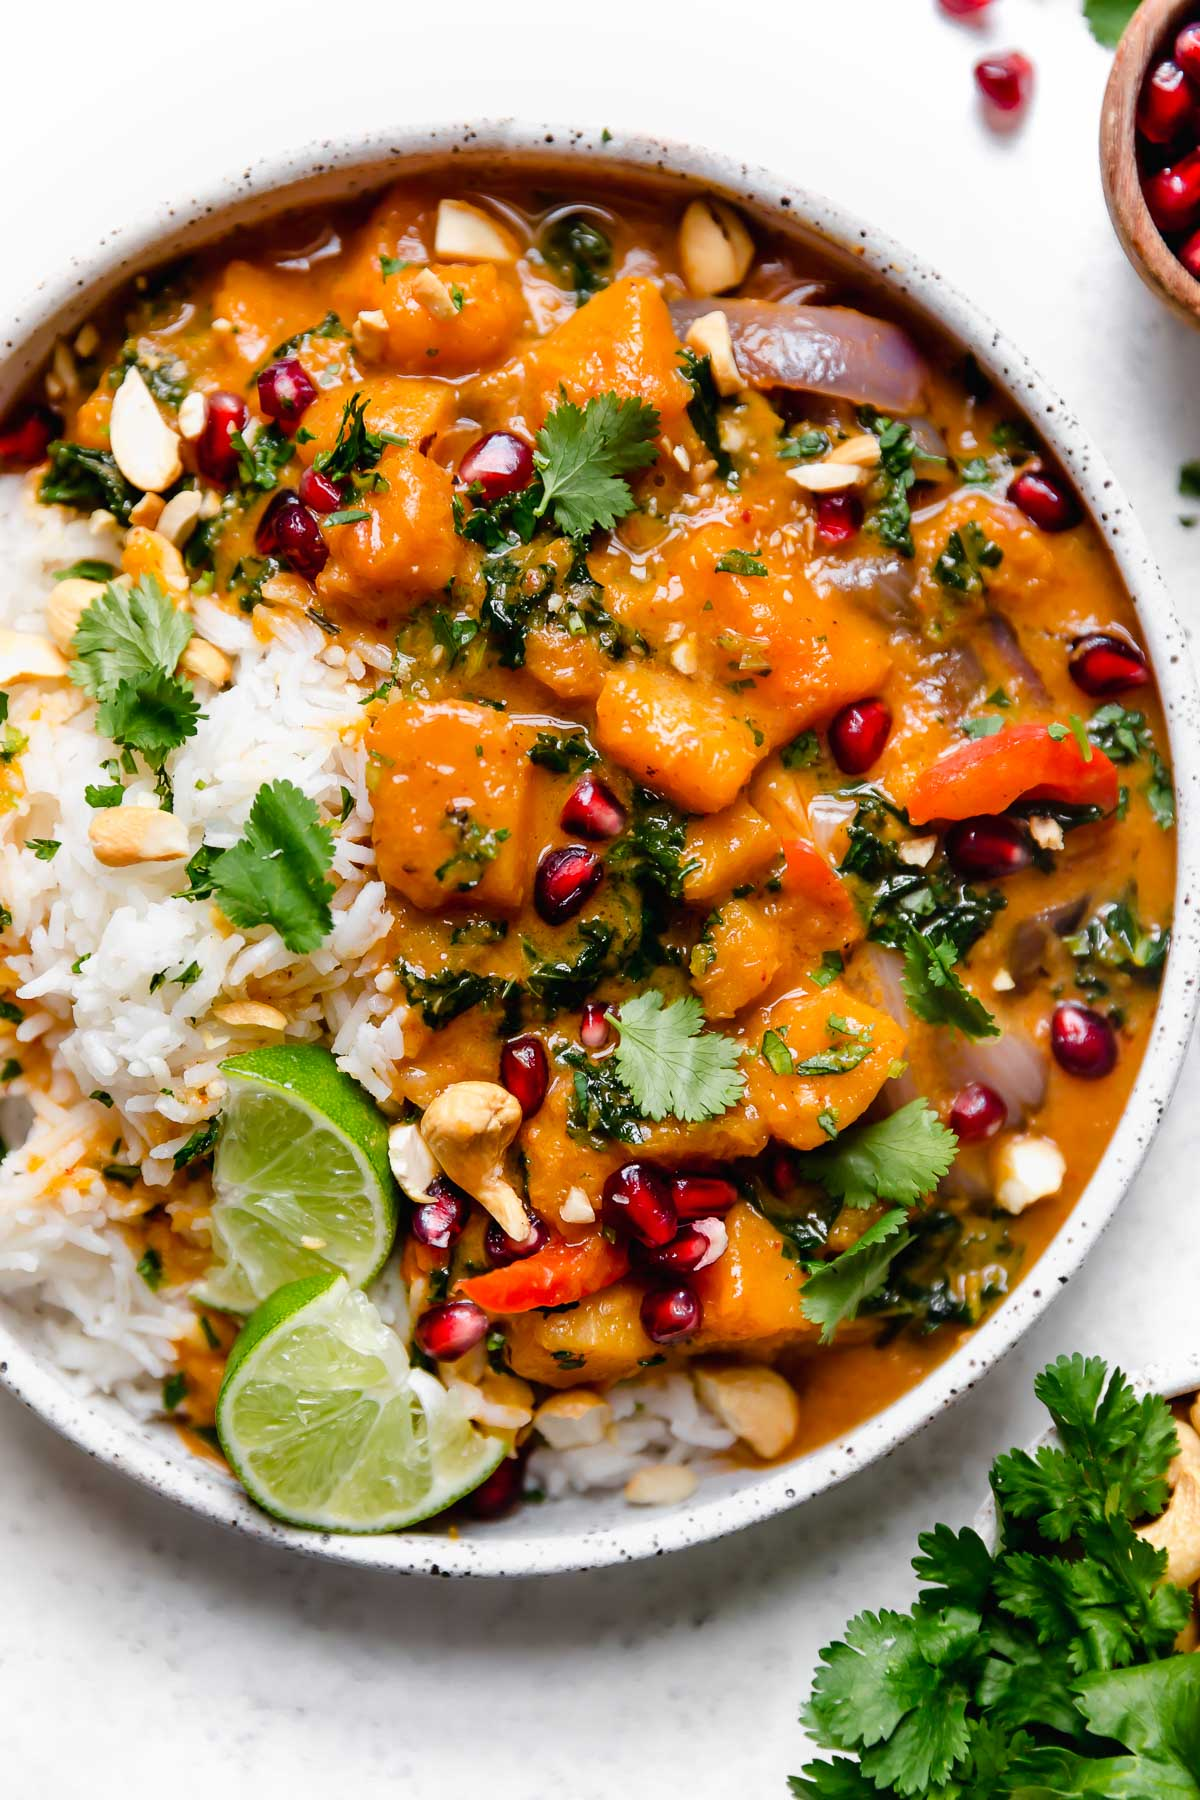 Butternut Squash Red Curry in a speckled white bowl, with white rice, chopped cilantro, cashews, & pomegranate arils.